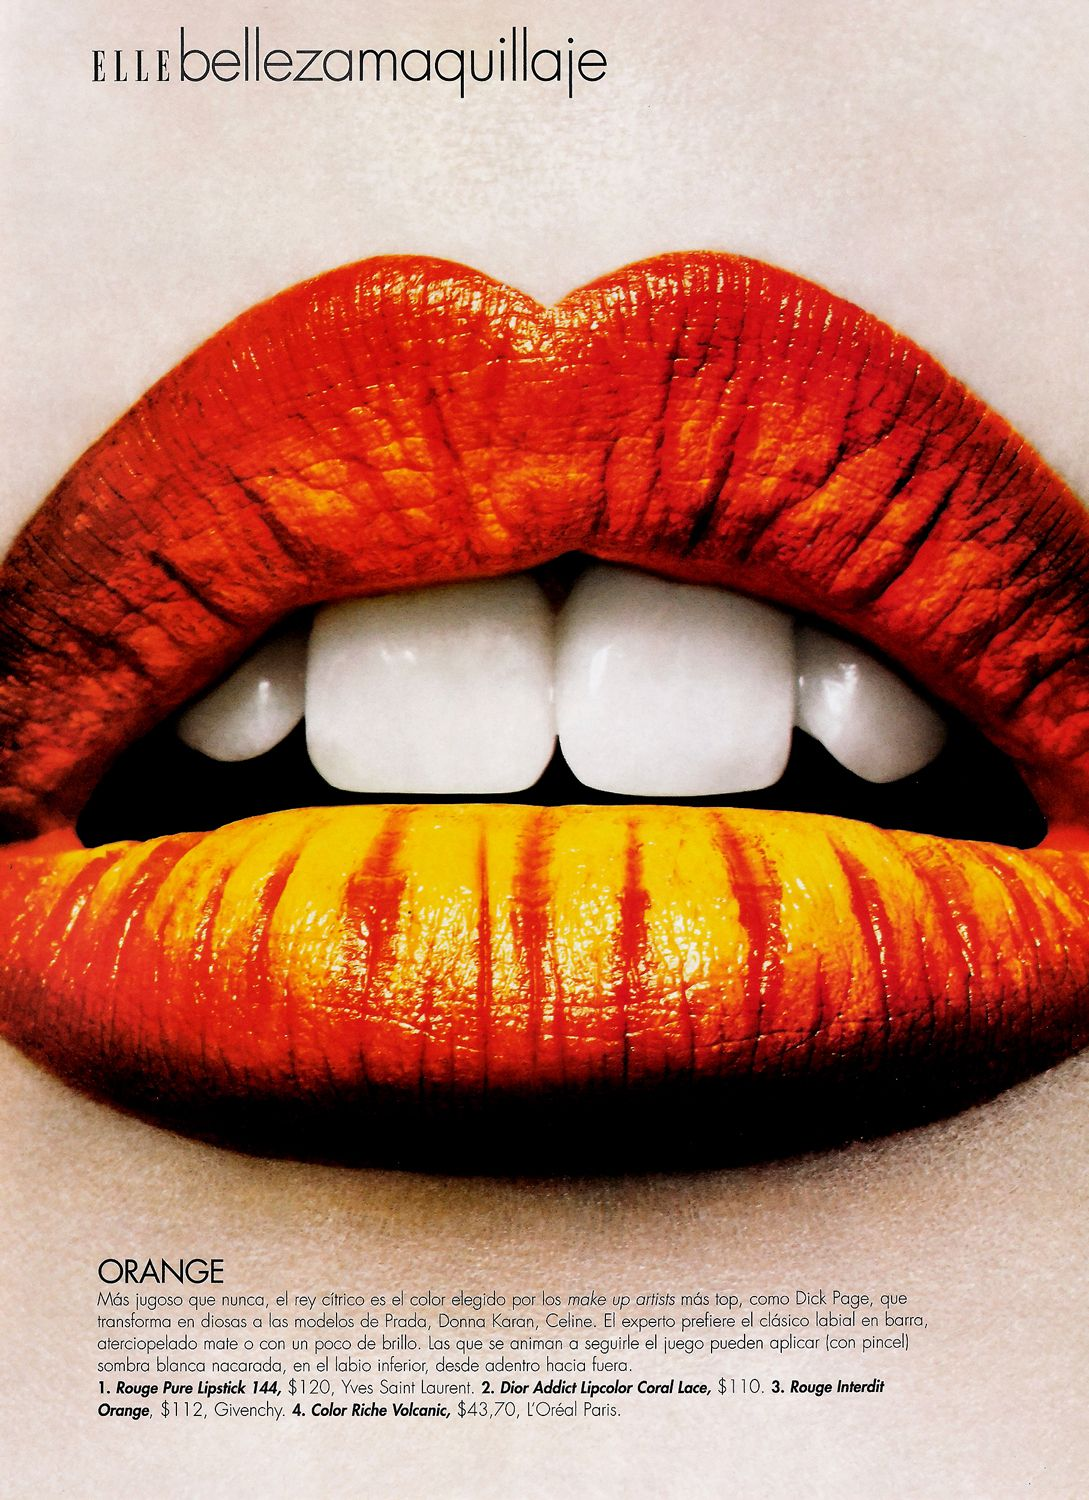 Elle Argentina Nov 2009 By Mierswa Kluska Orange Lips Lip Art